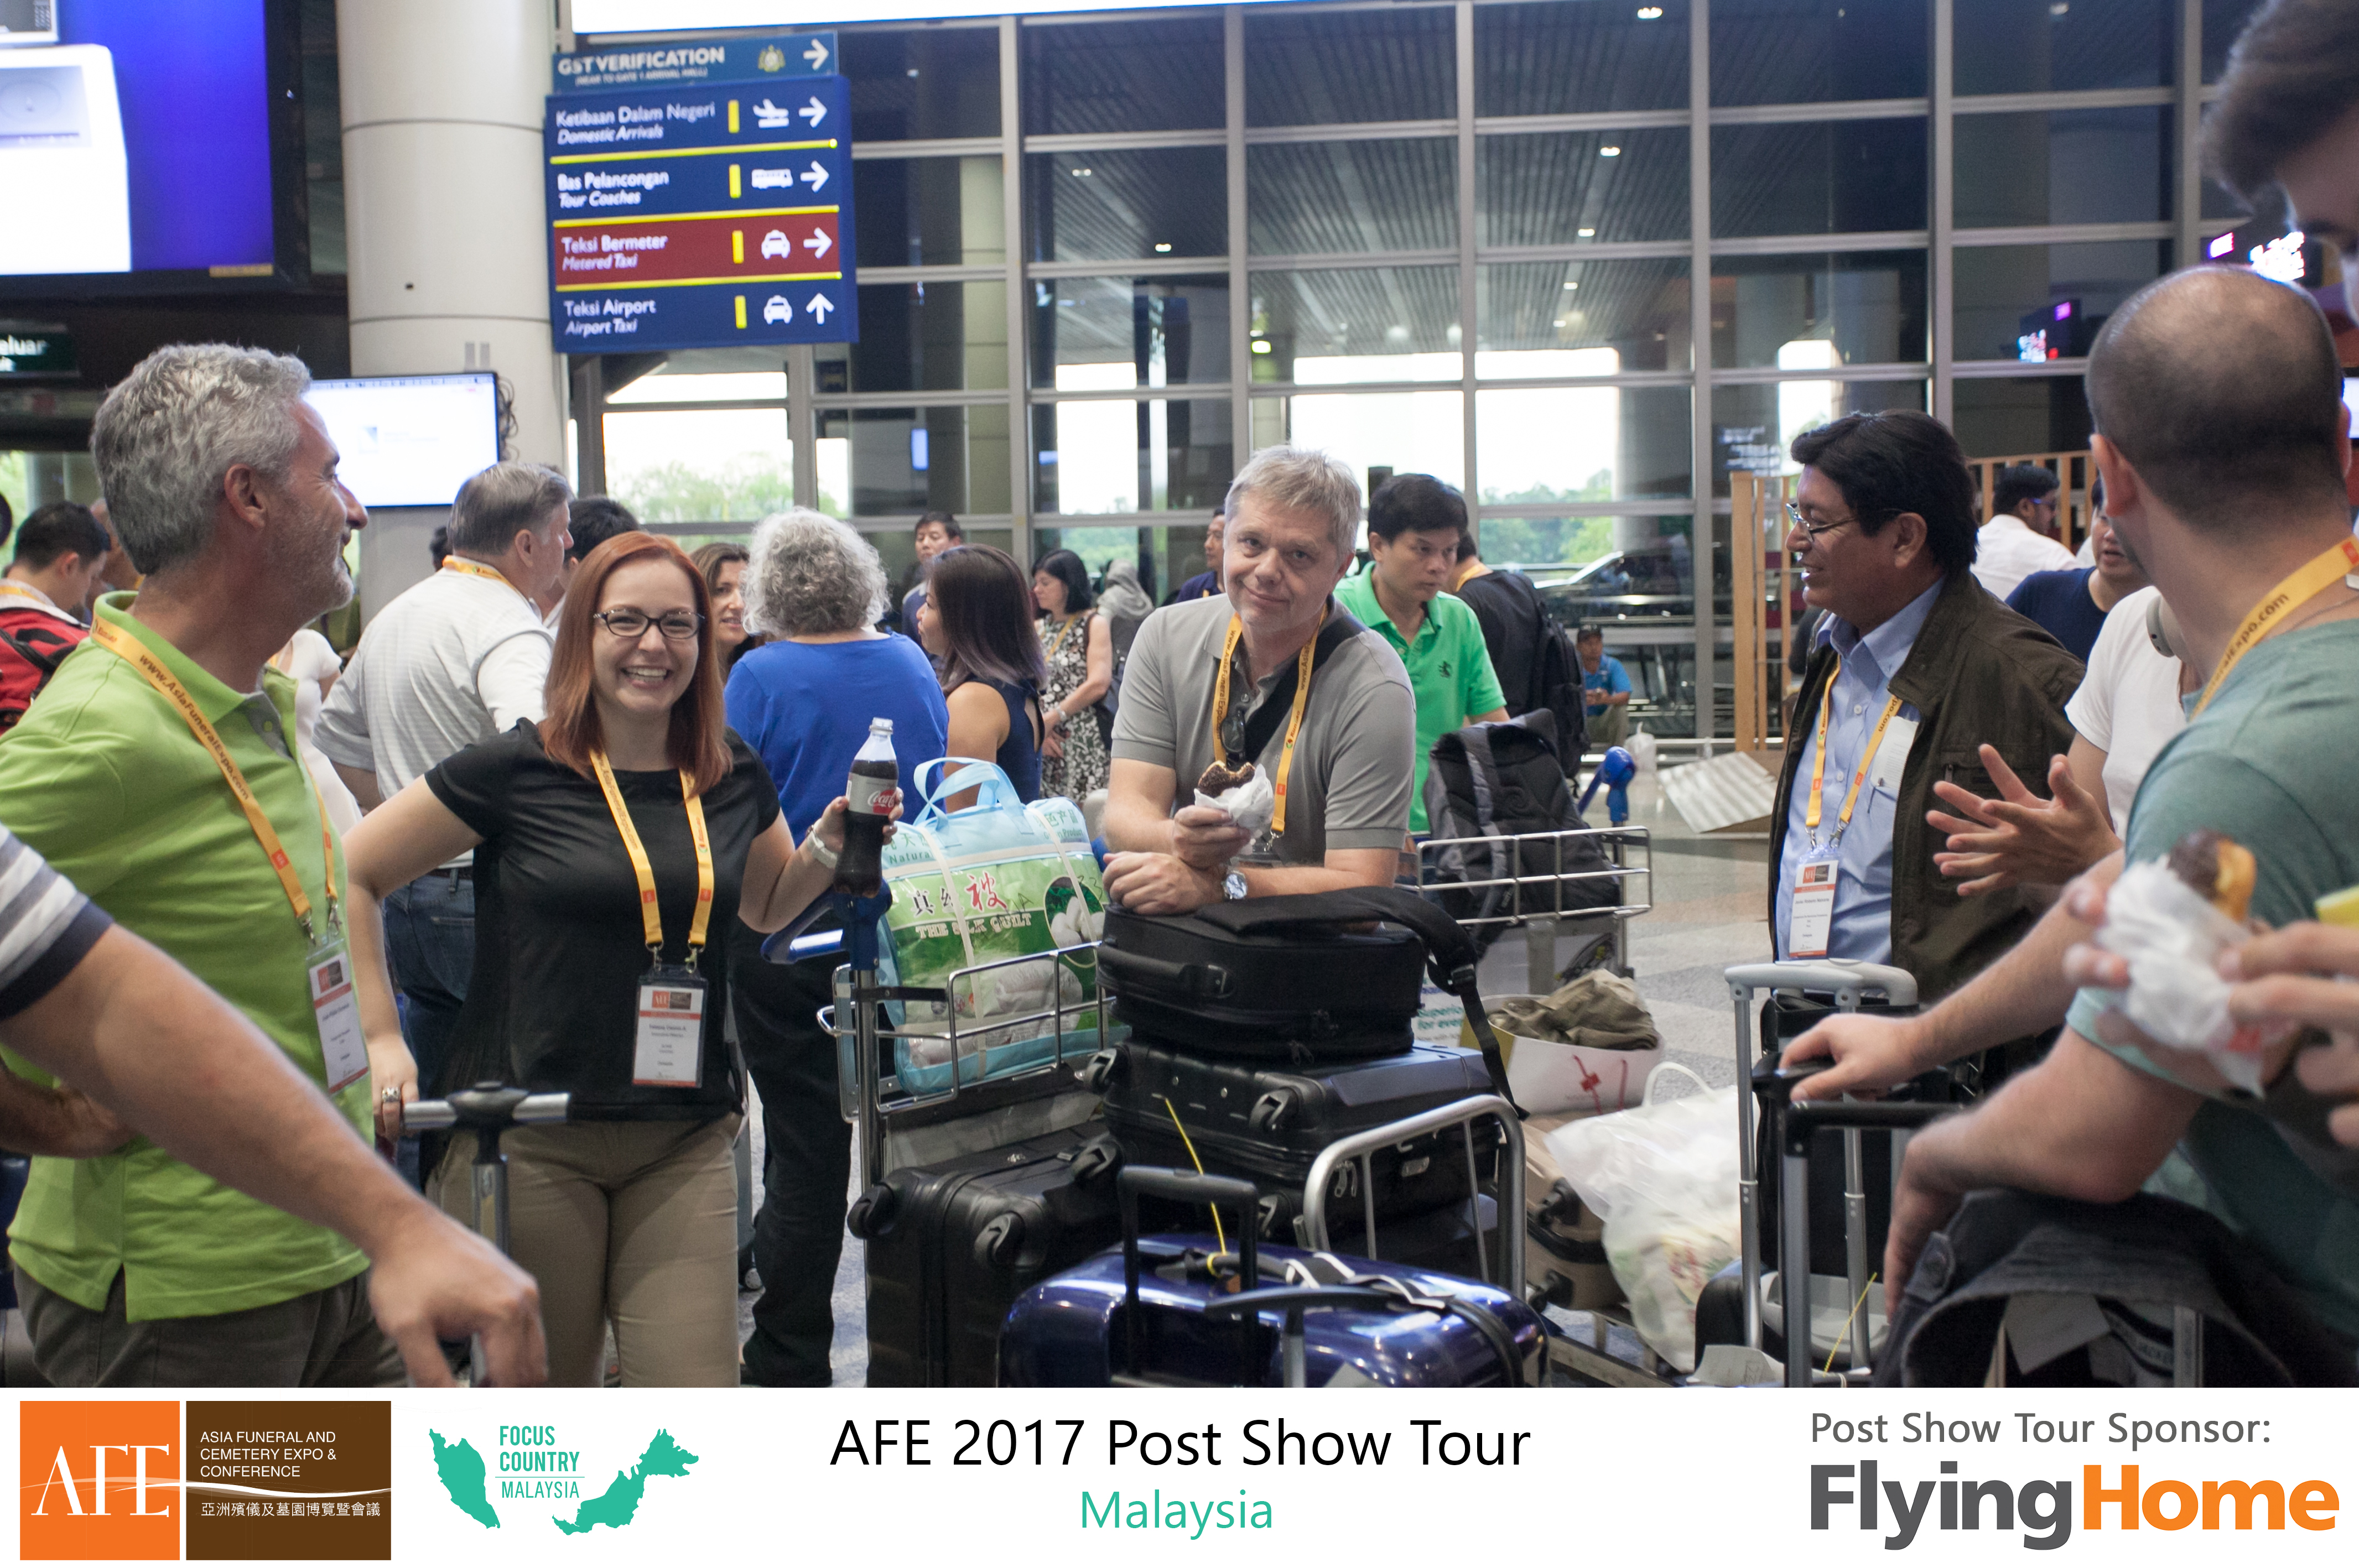 AFE Post Show Tour 2017 Day 1 - 32